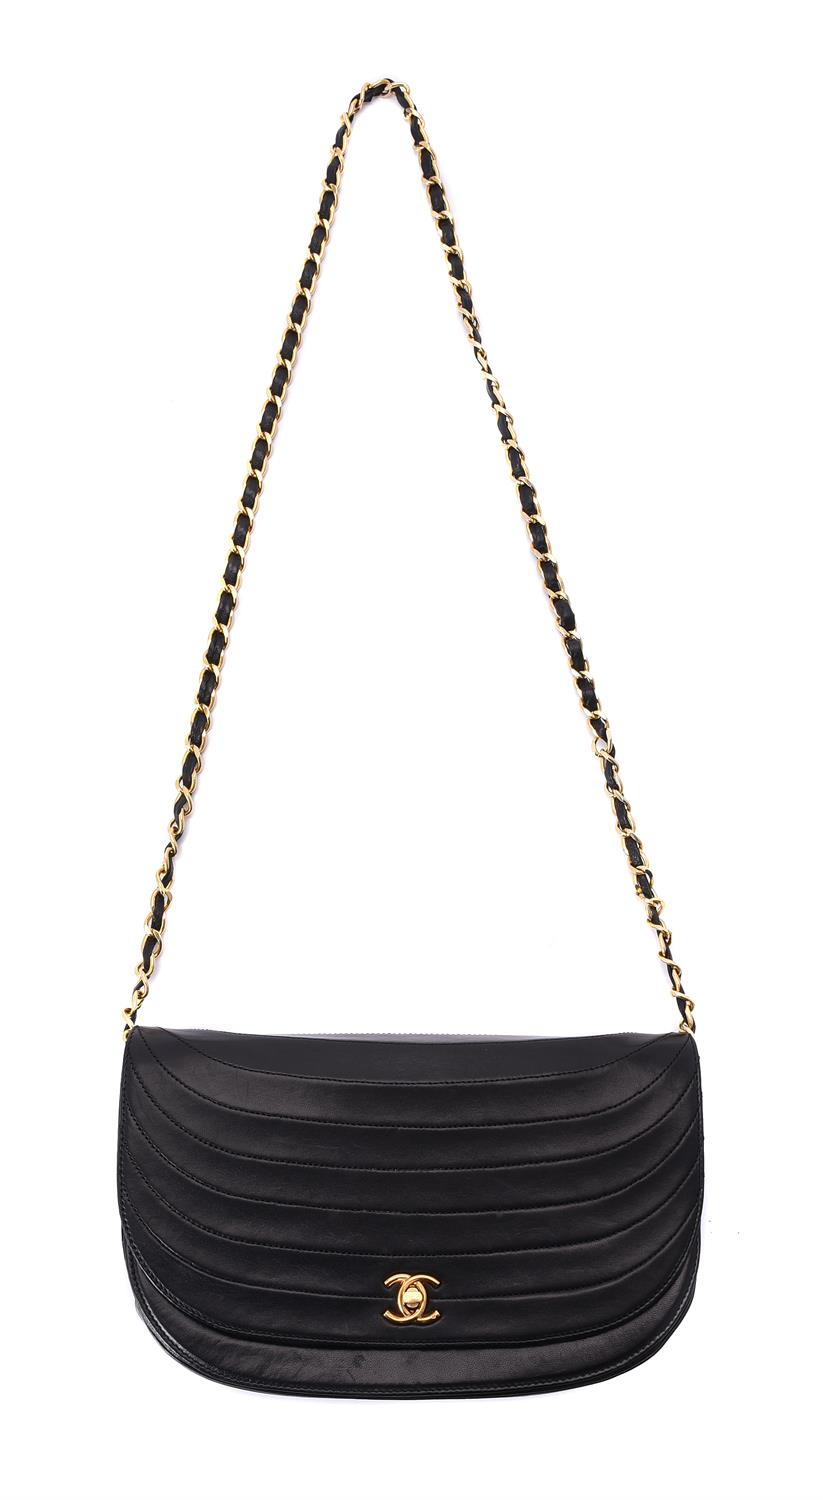 Chanel, a vintage black leather flap bag